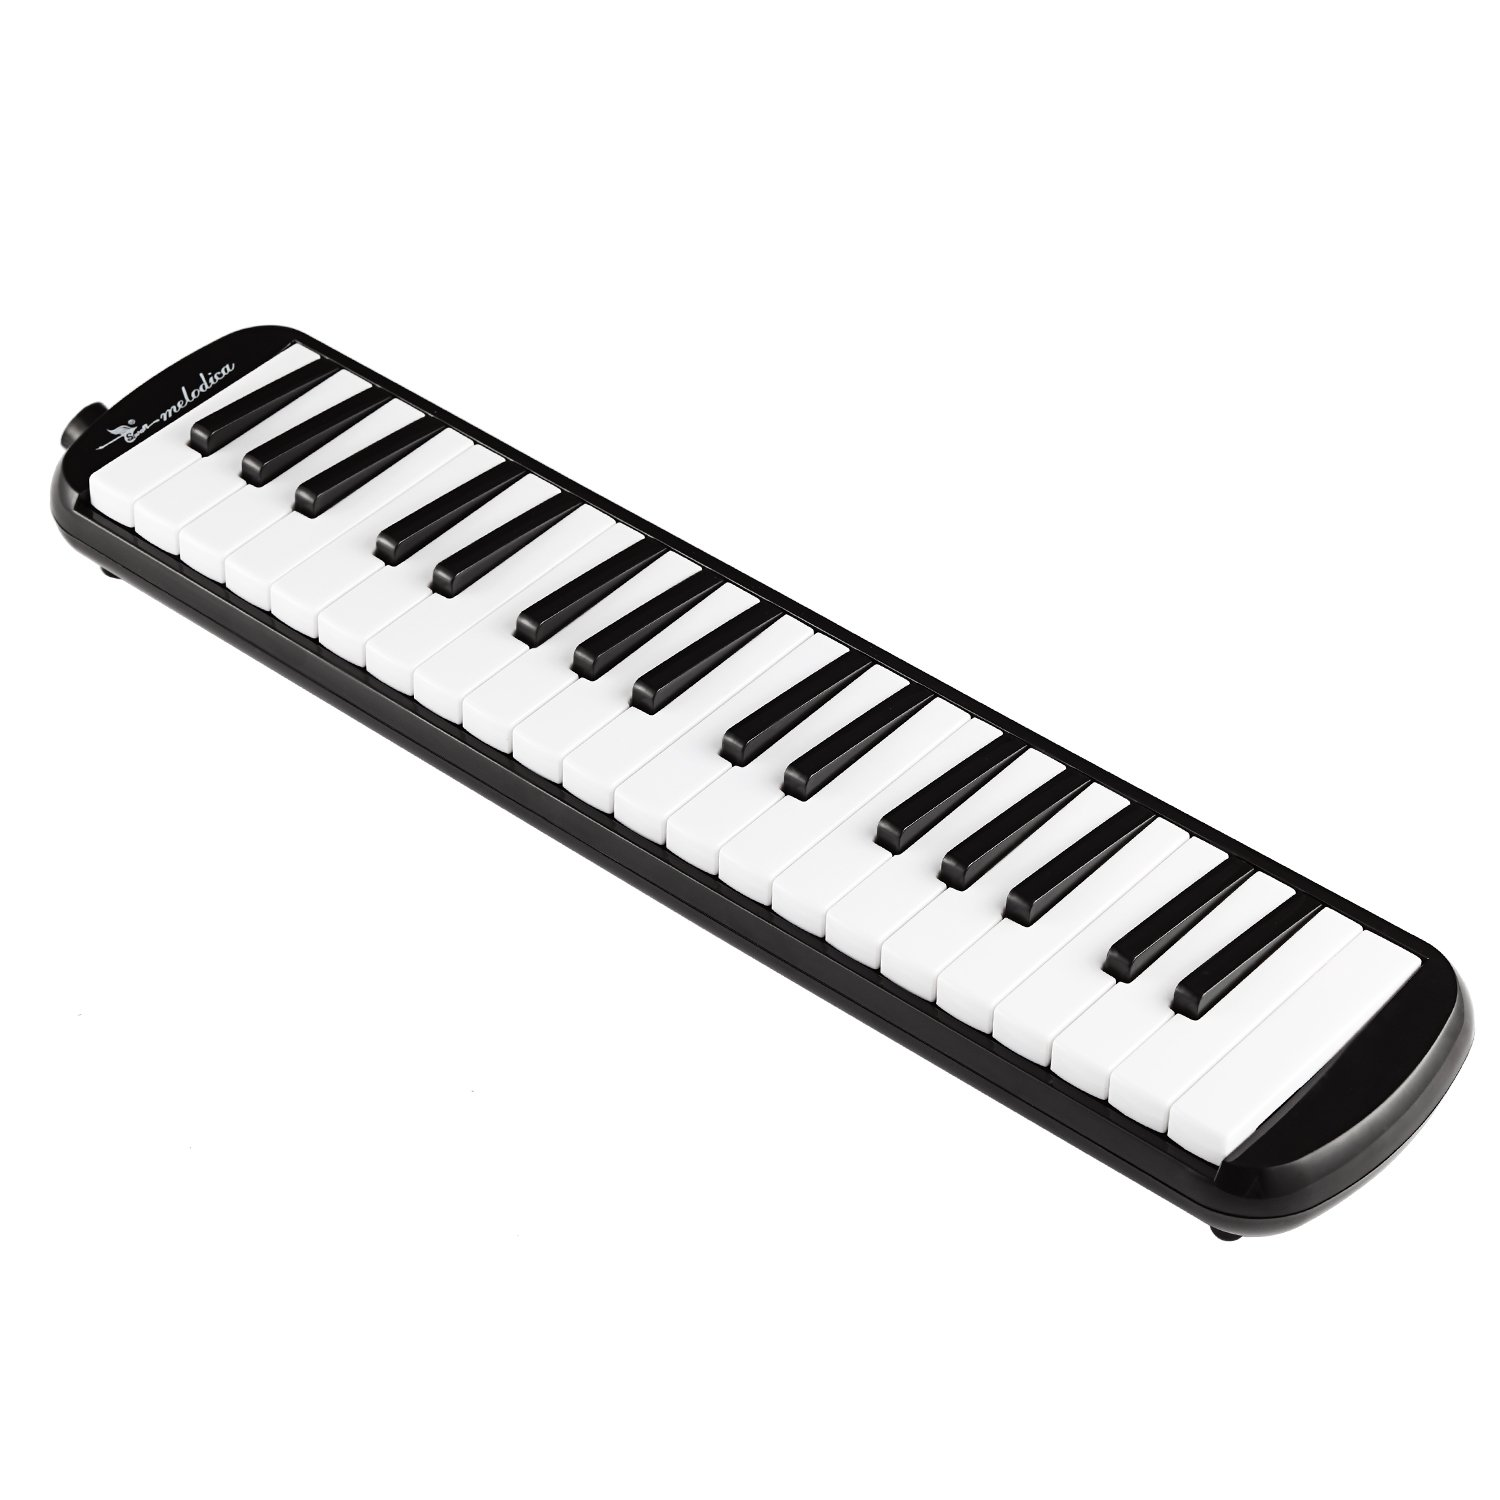 Swan 37 Keys Piano Melodica Musical Instrument with Carrying Case,Black product image